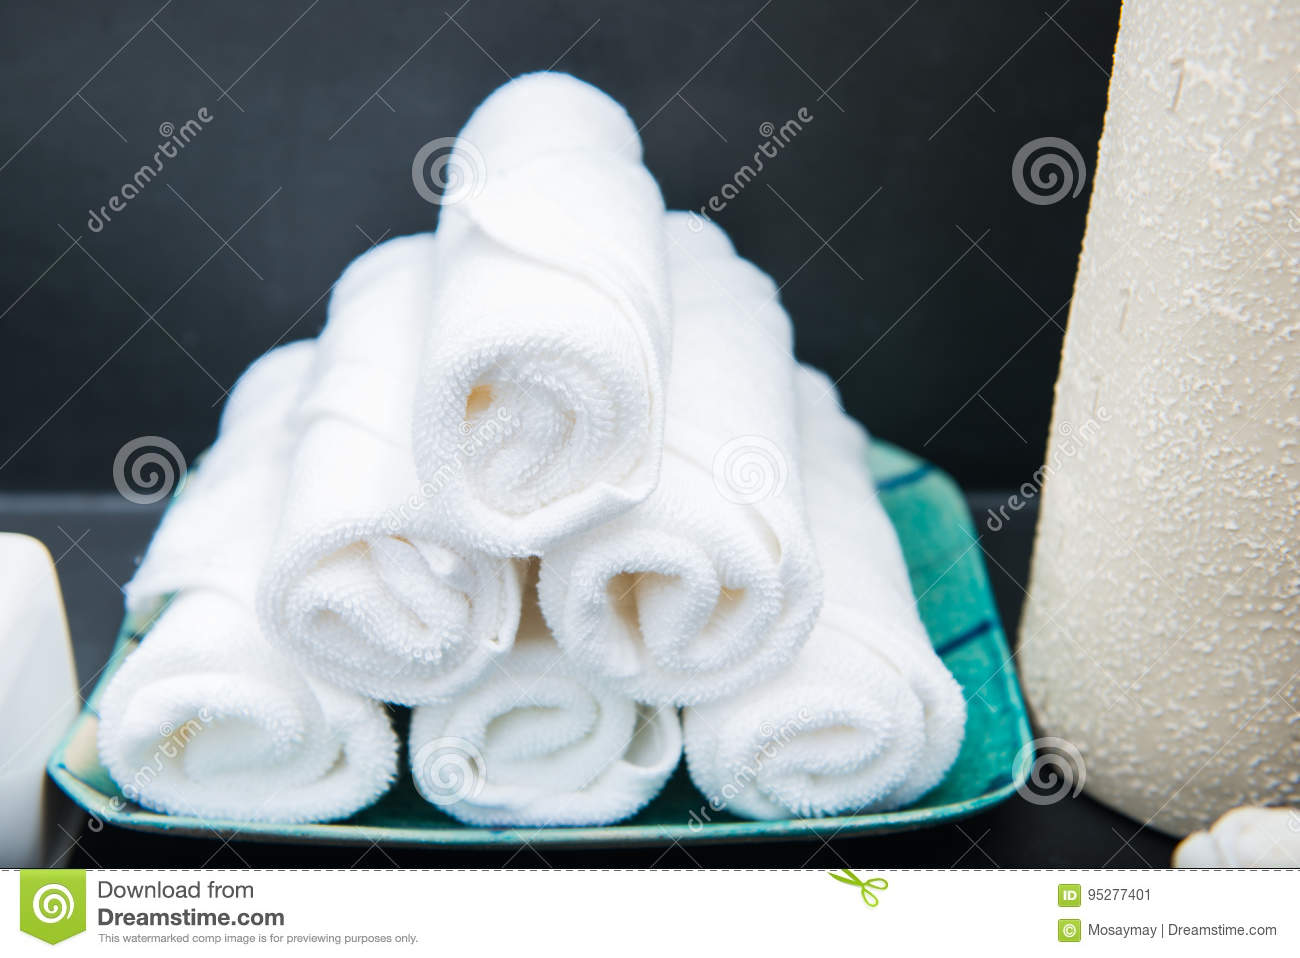 White hand towels in bathroom